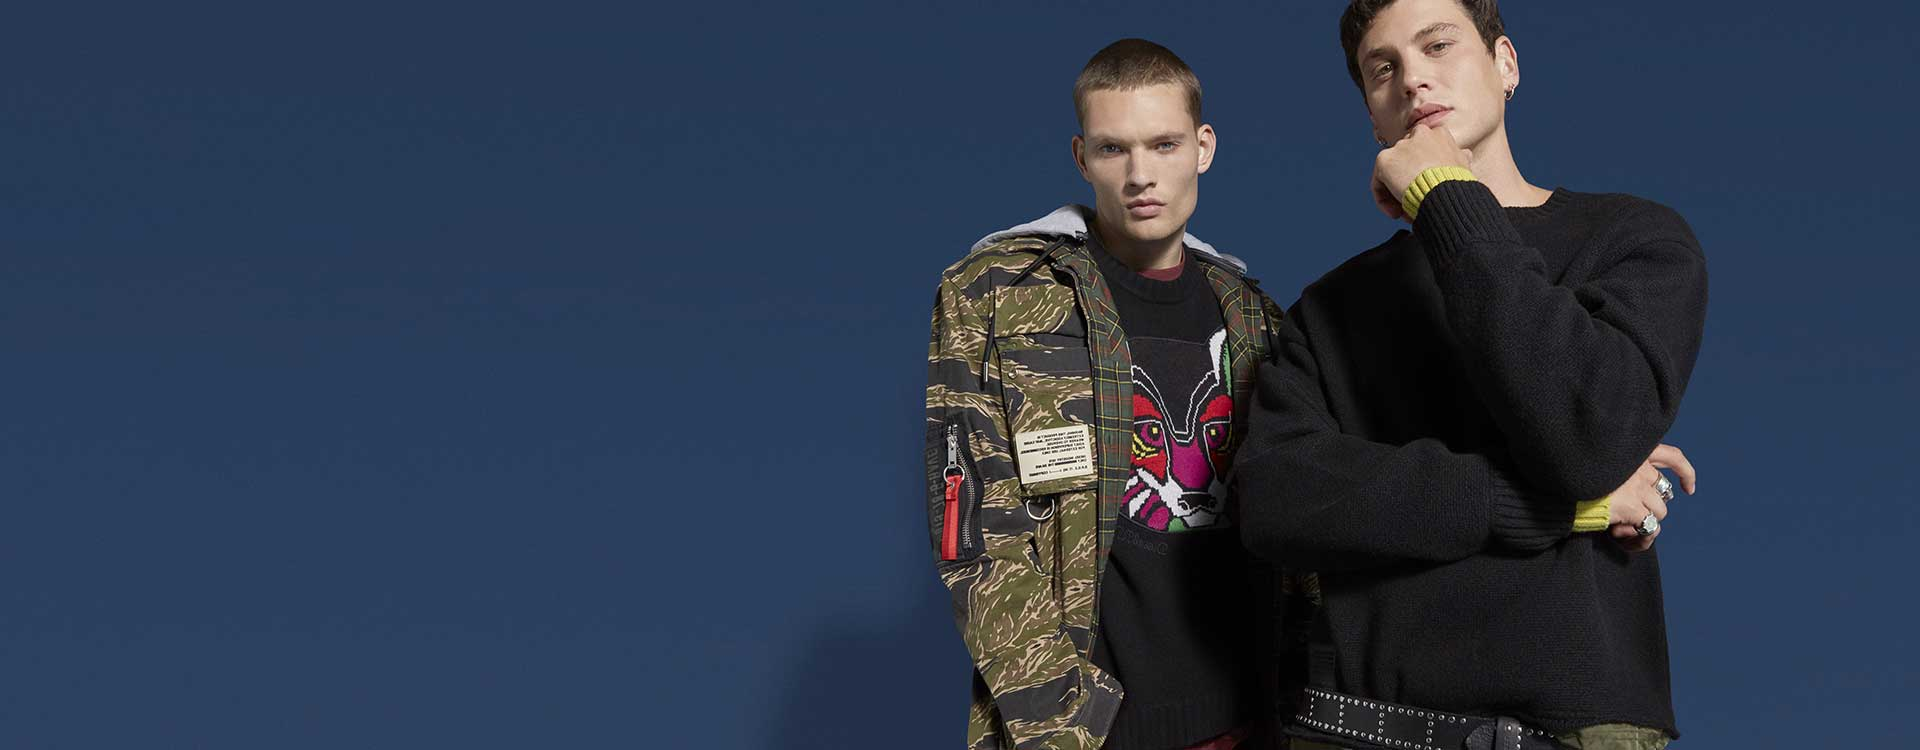 Shop The New Diesel Collection for Men